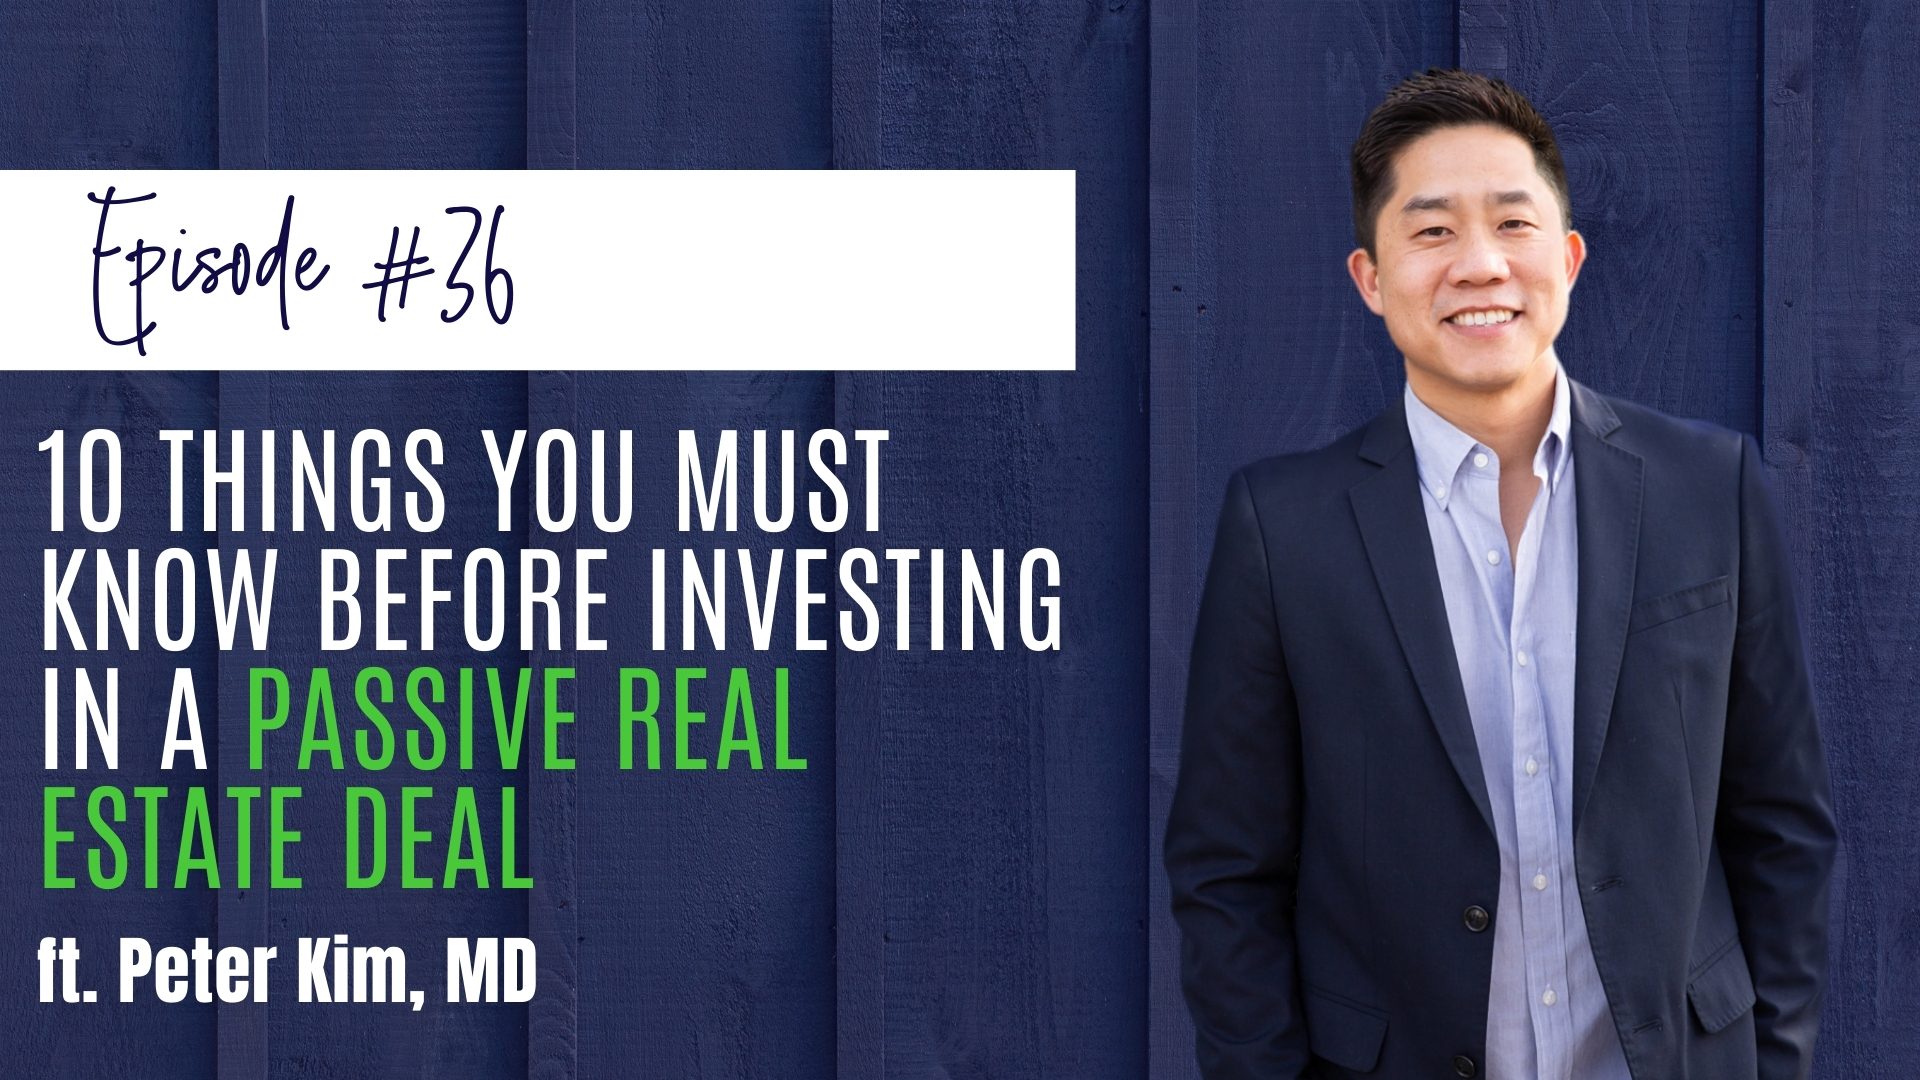 10 Things You MUST Know Before Investing in a Passive Real Estate Deal